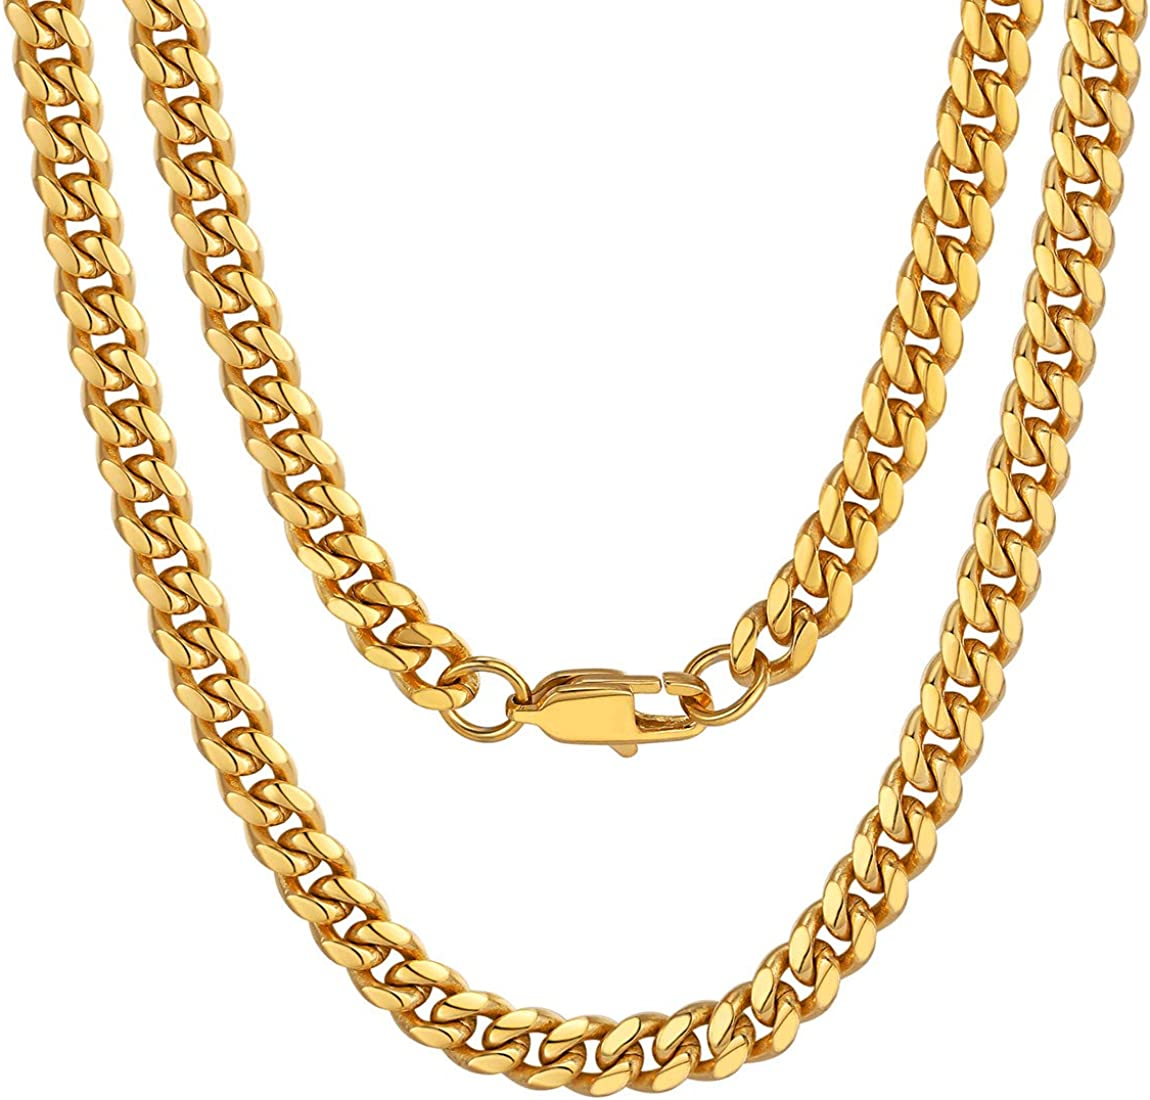 ChainsPro Men Chunky Miami Cuban Chain Necklace, Custom Available, 6/9/14mm Width, 18/20/22/24/26/28/30inch Length, Gold/Steel/Black (with Gift Box)…